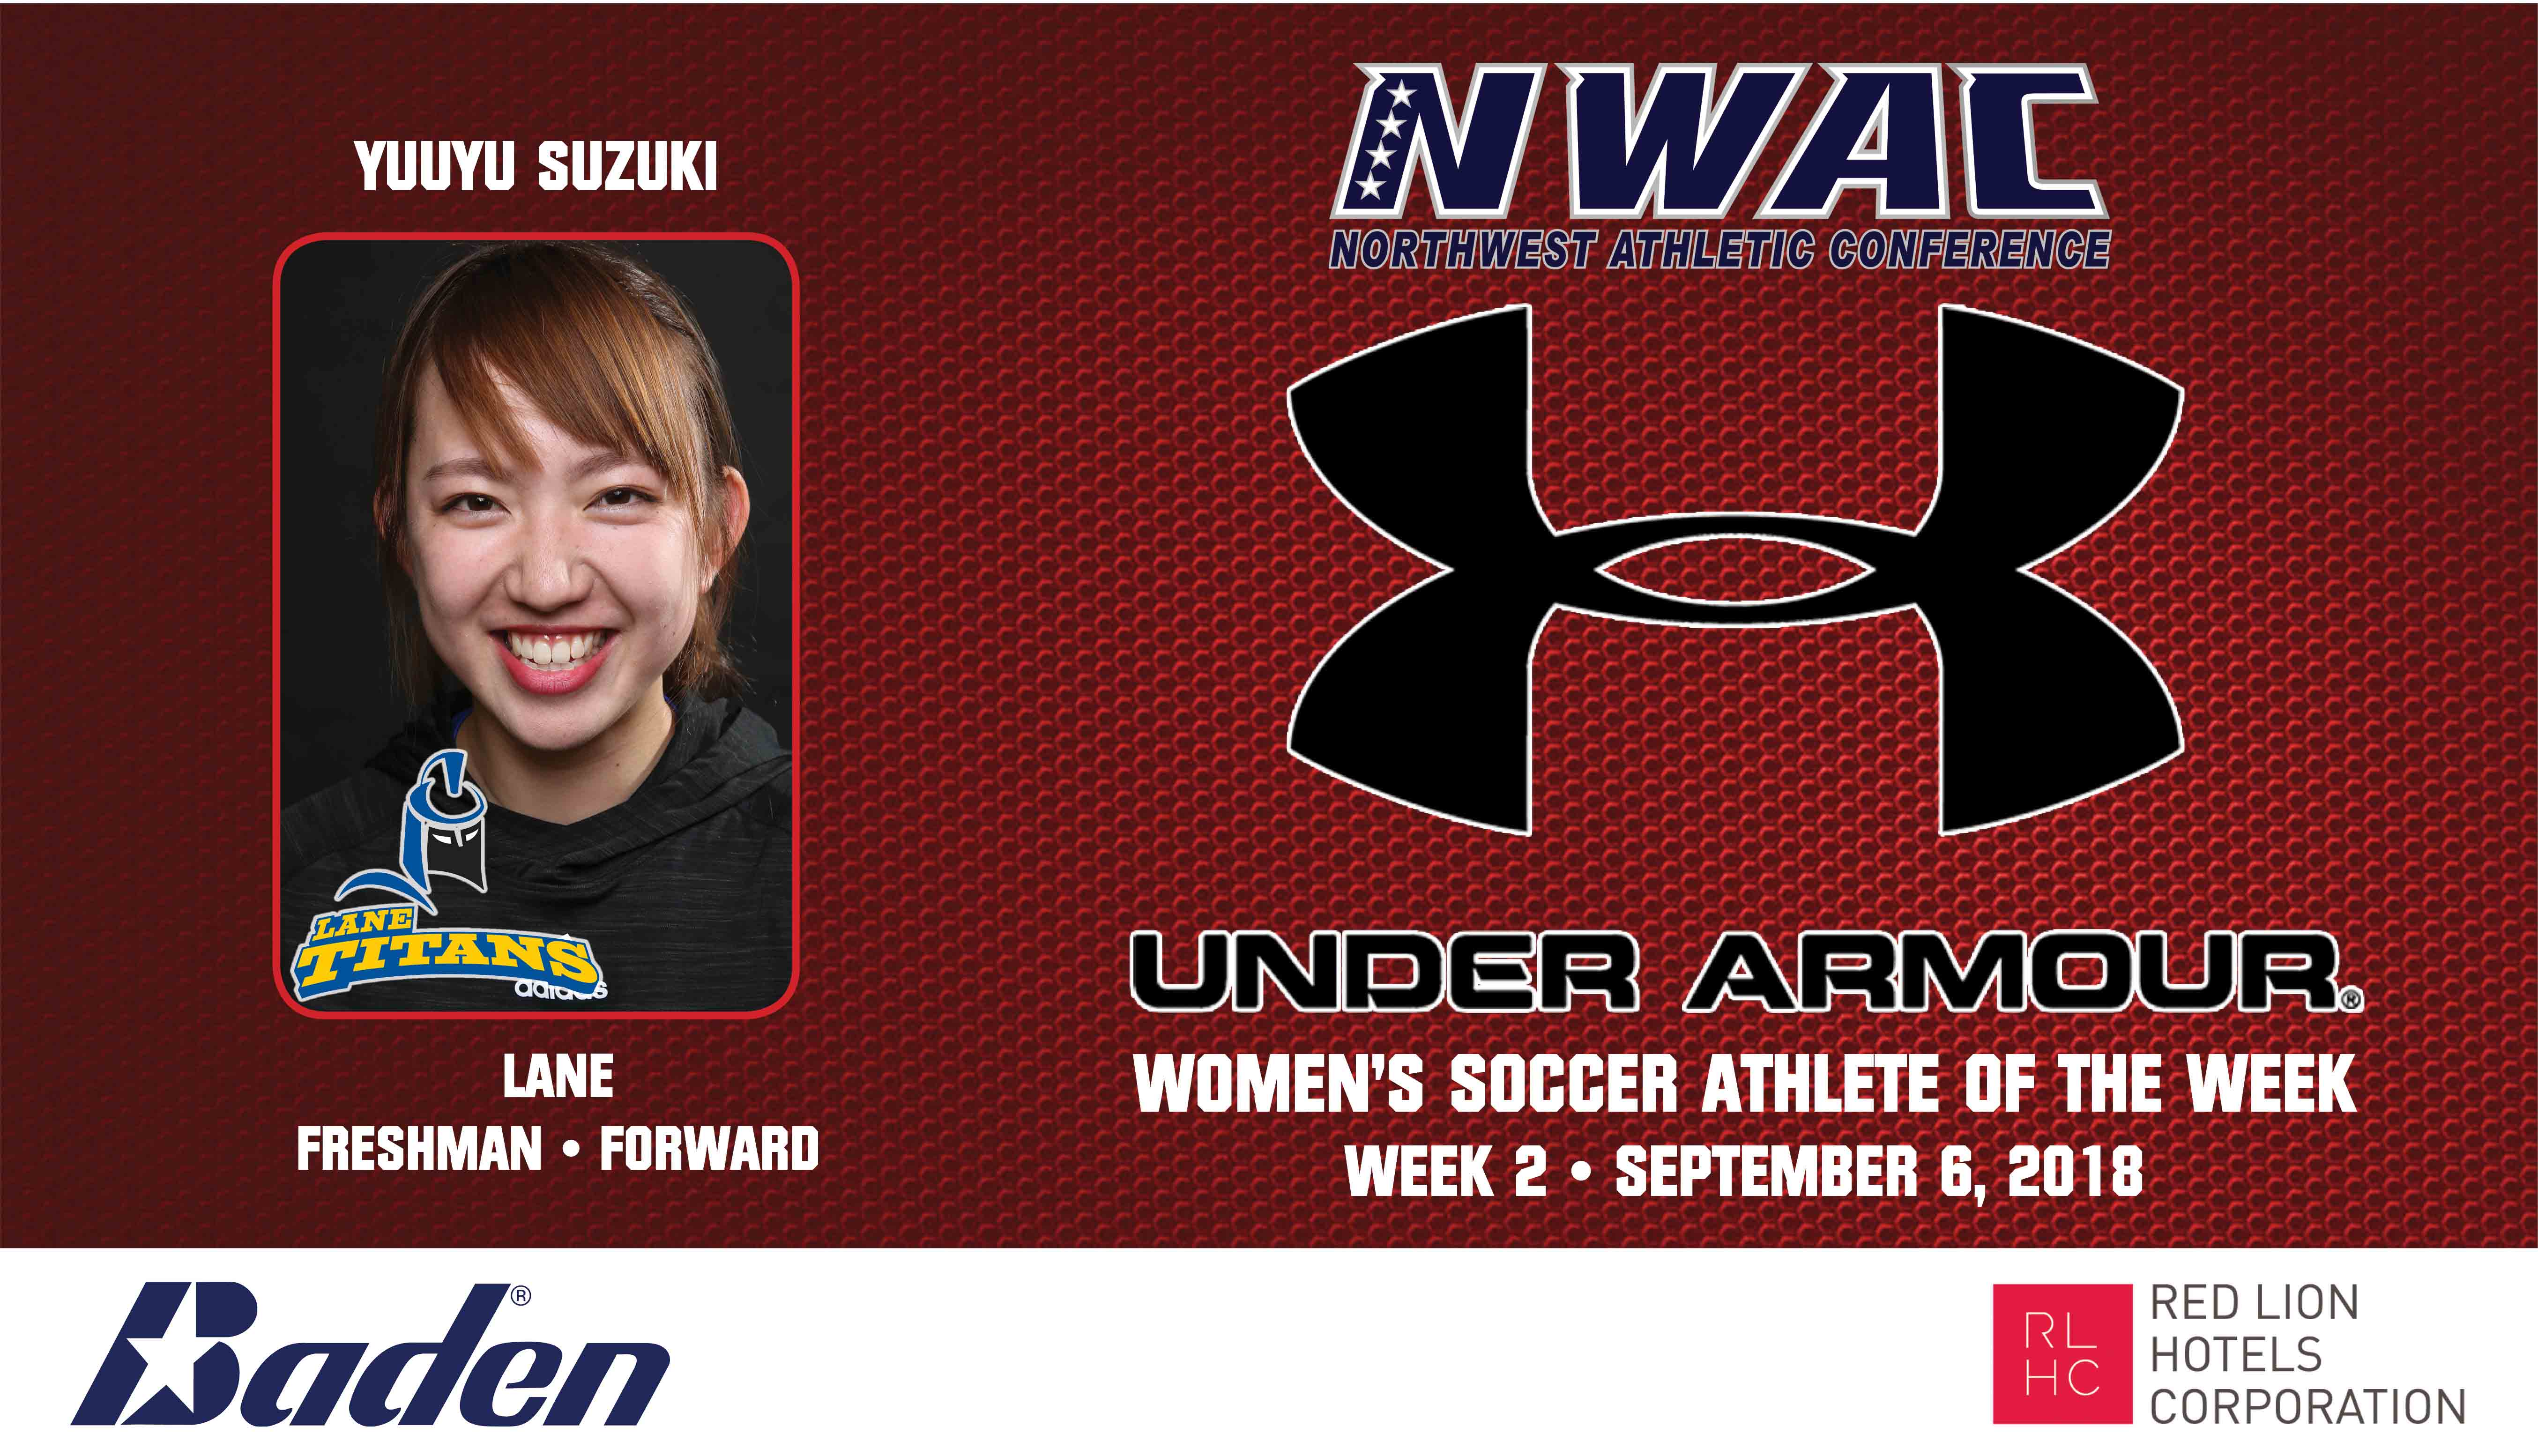 Yuuyu Suzuki Armour Player of the Week graphic